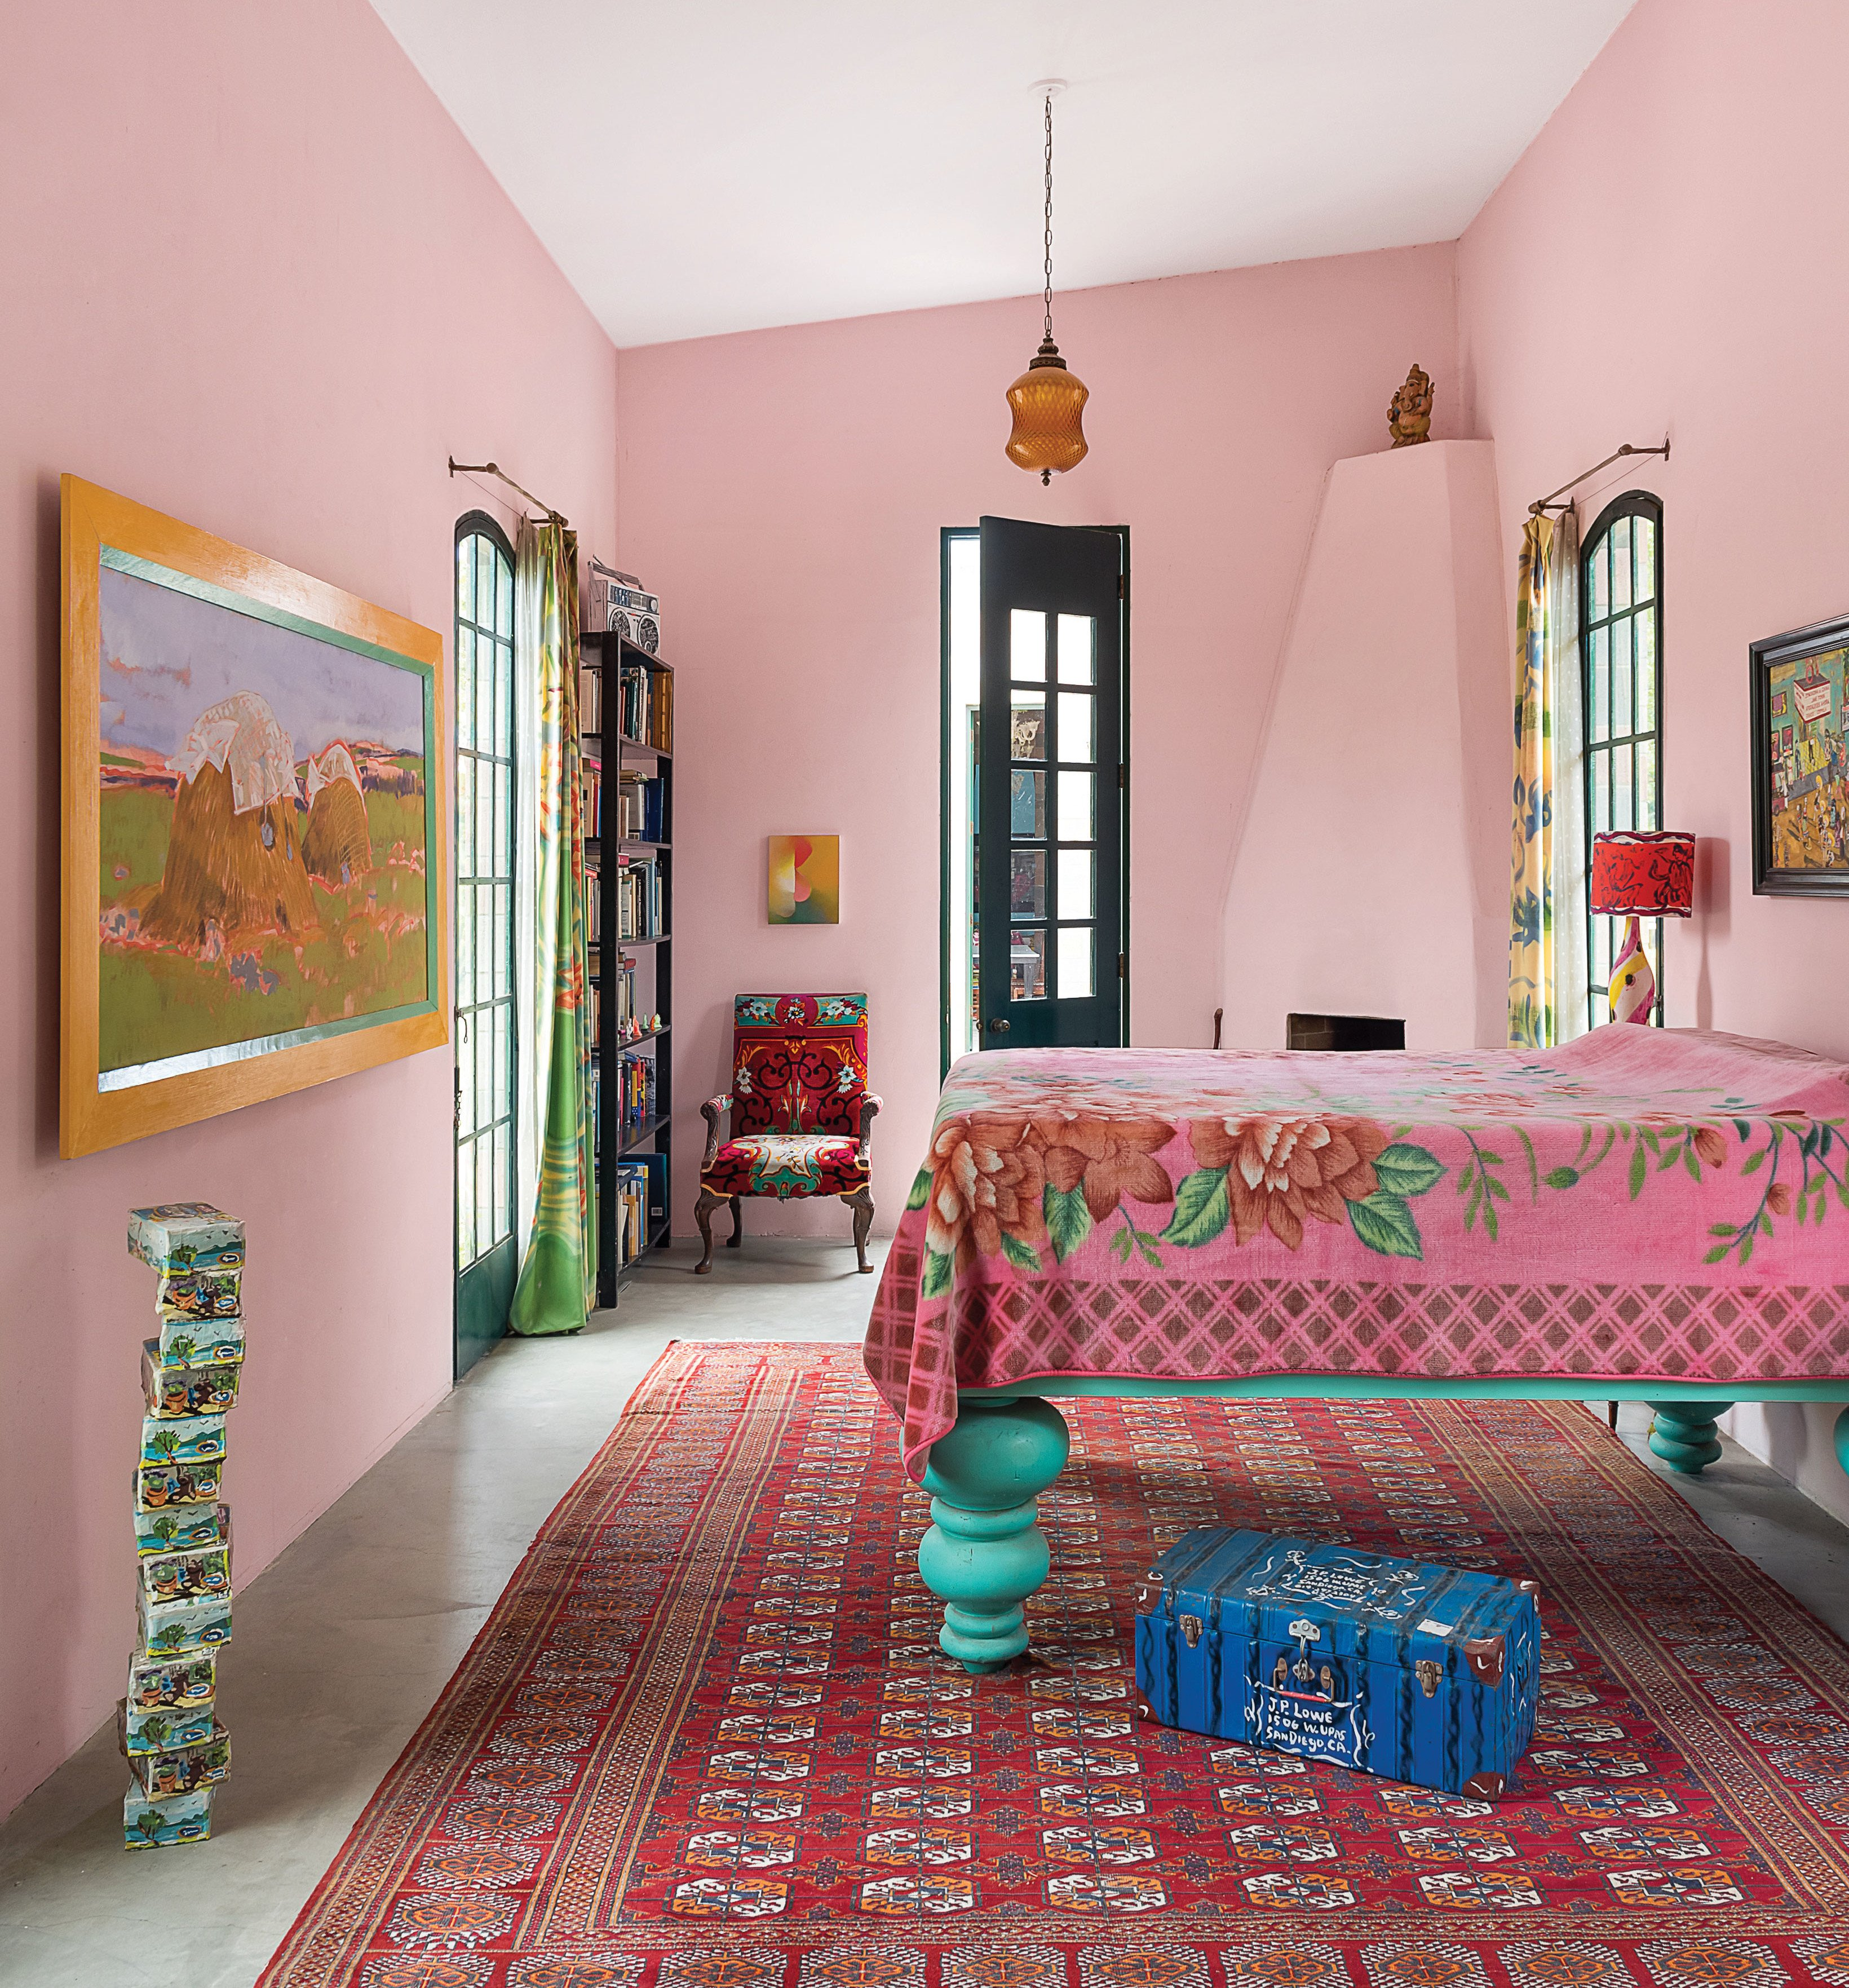 jean lowe and kim macconnel artists art san diego home master bedroom tall bed pink walls